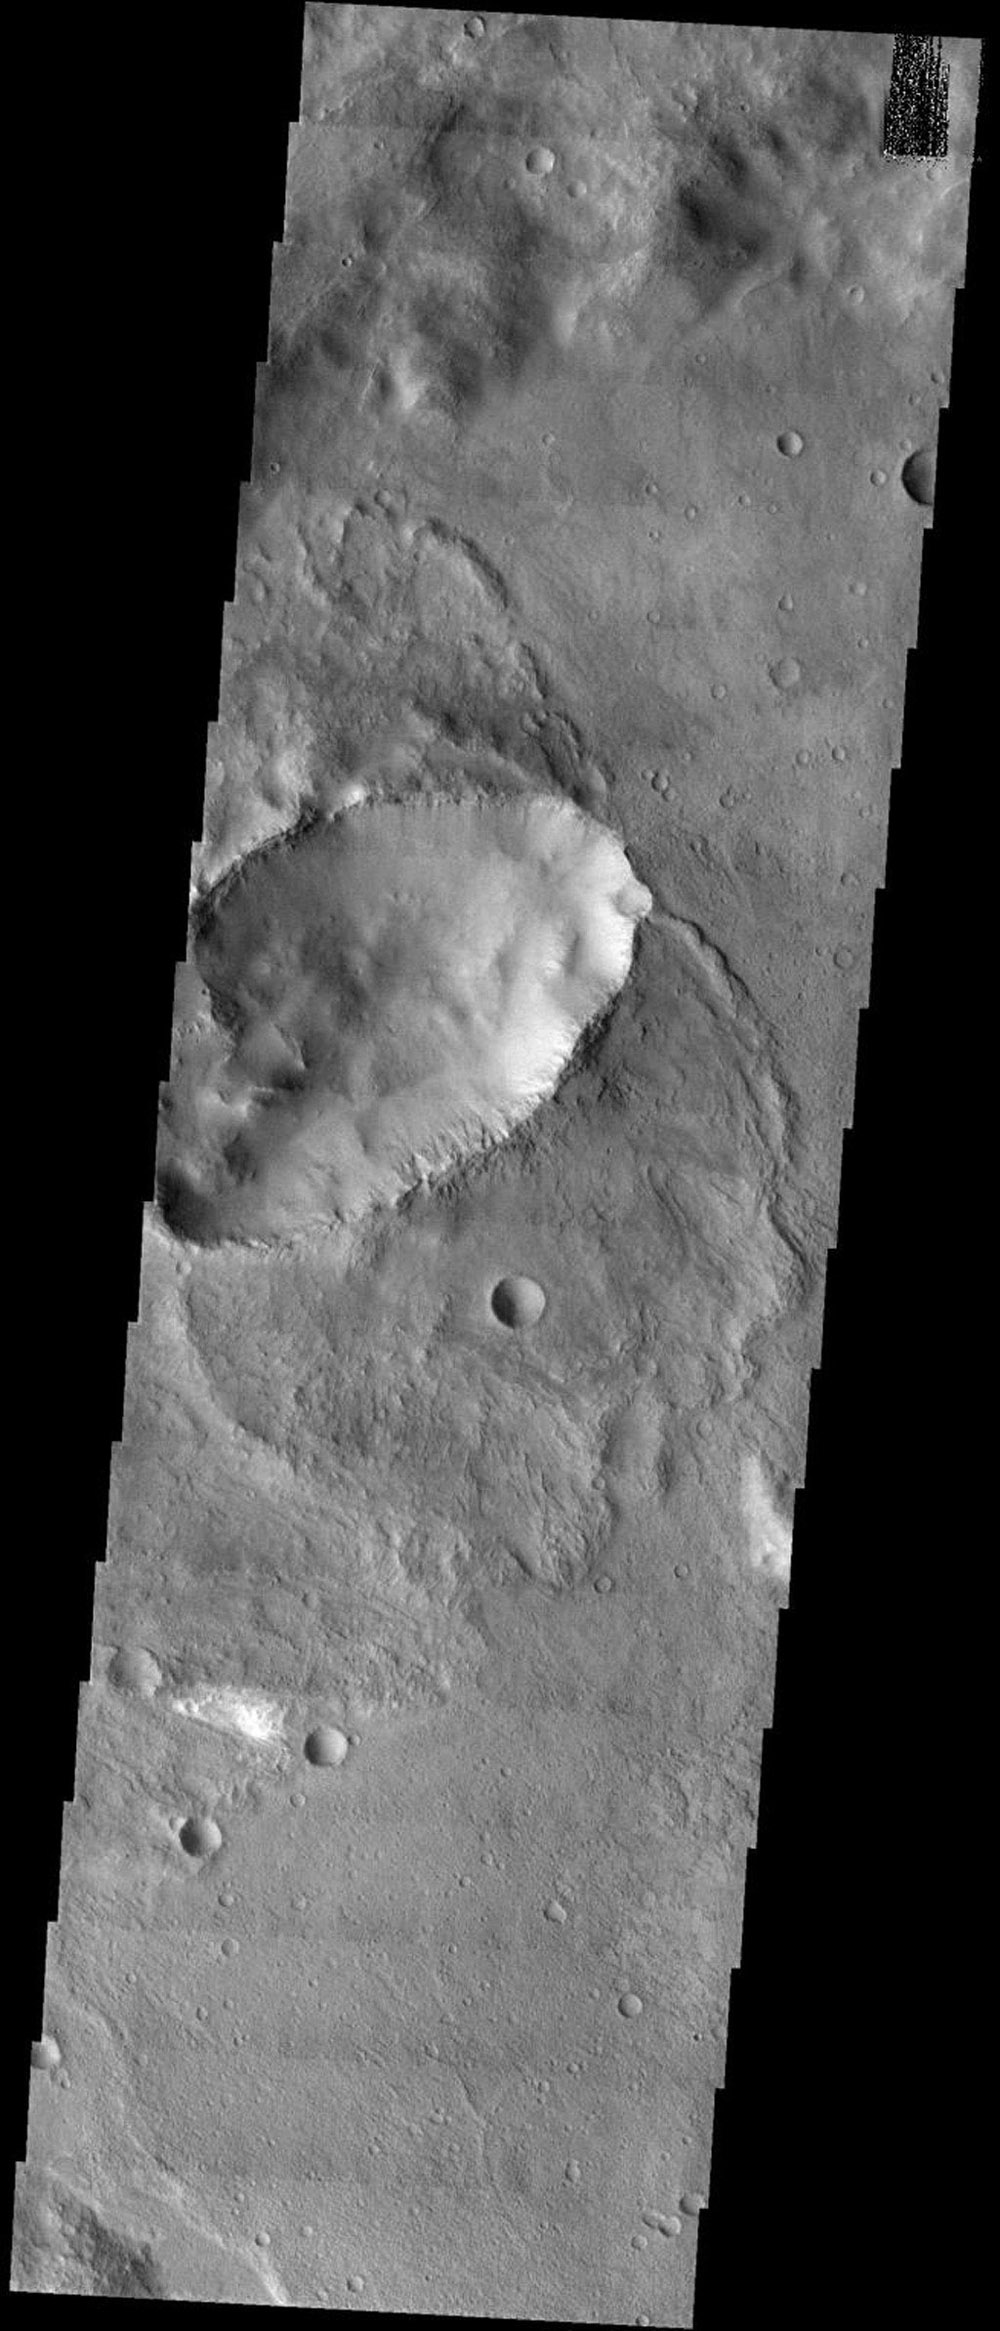 NASA's Mars Odyssey spacecraft captured this image in September 2003, showing heavily cratered southern highlands of Mars. Elliptical craters with 'butterfly' ejecta patterns make up roughly 5% of the total crater population of Mars.